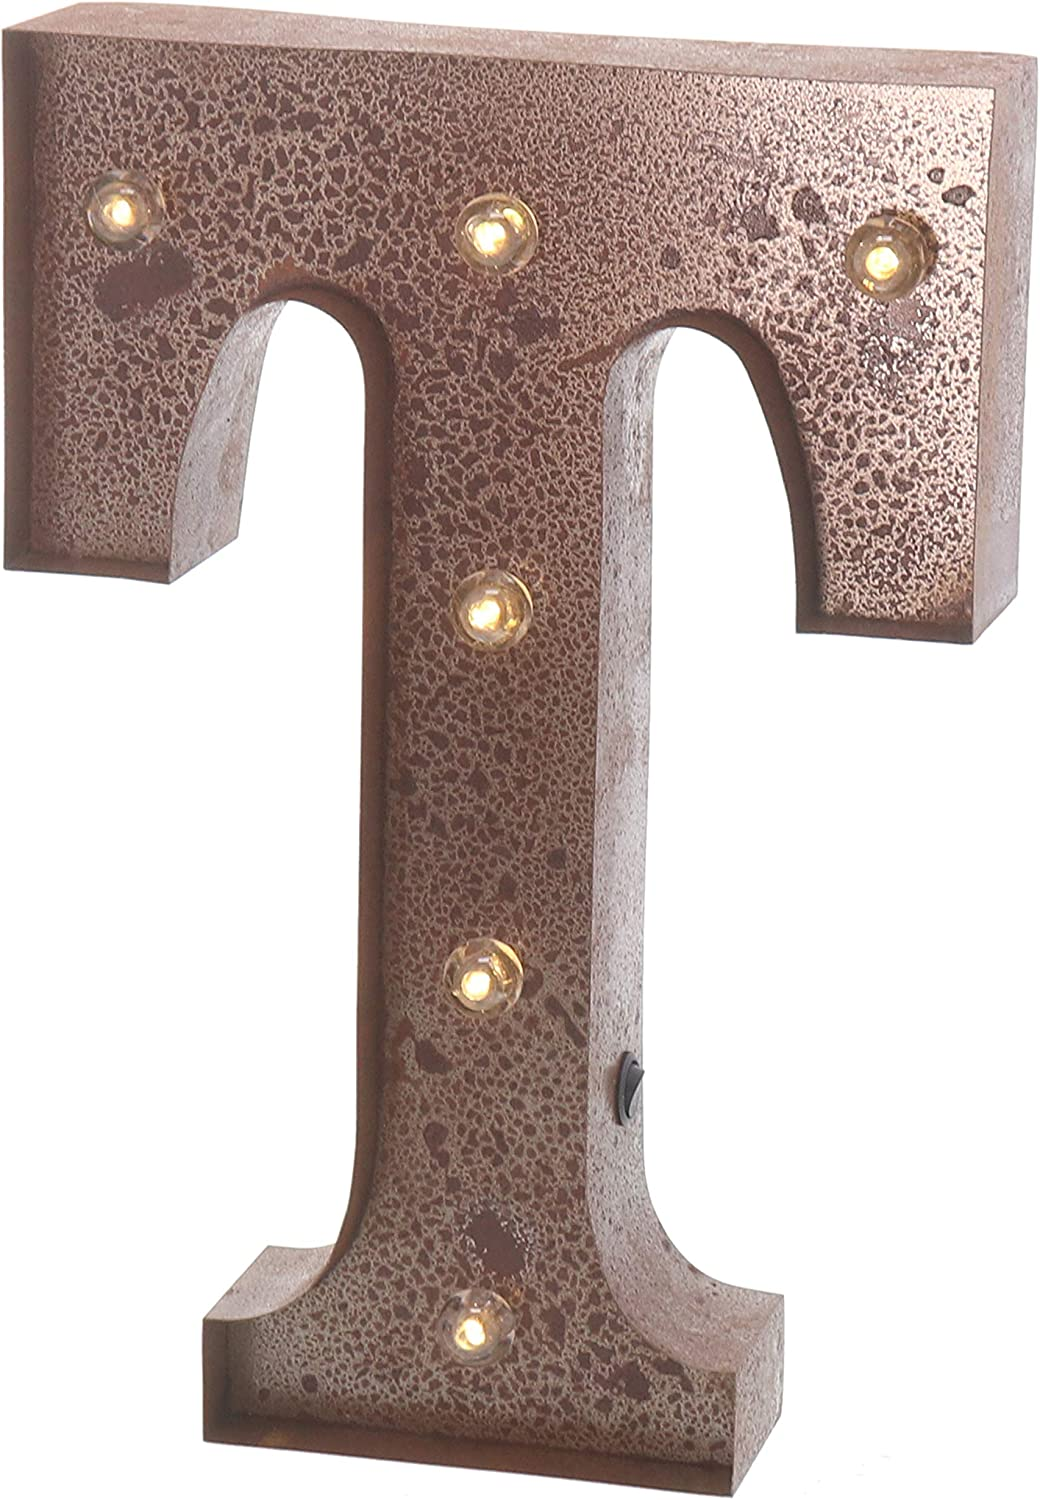 """Barnyard Designs Metal Marquee Letter T Light Up Wall Initial Wedding, Home and Bar Decoration 12"""" (Rust)"""